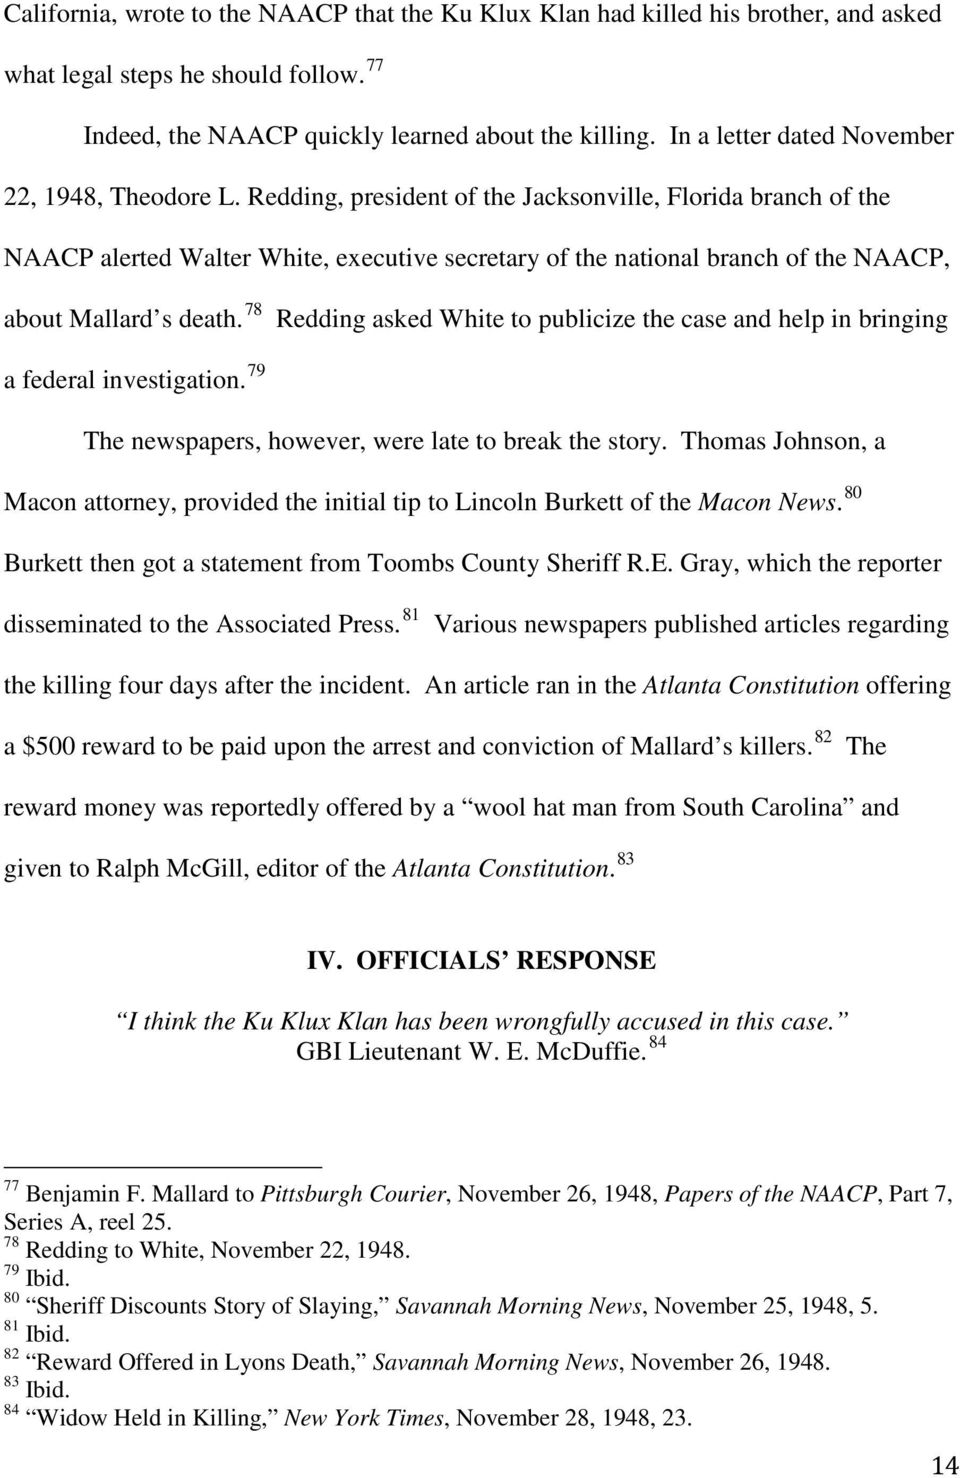 Redding, president of the Jacksonville, Florida branch of the NAACP alerted Walter White, executive secretary of the national branch of the NAACP, about Mallard s death.